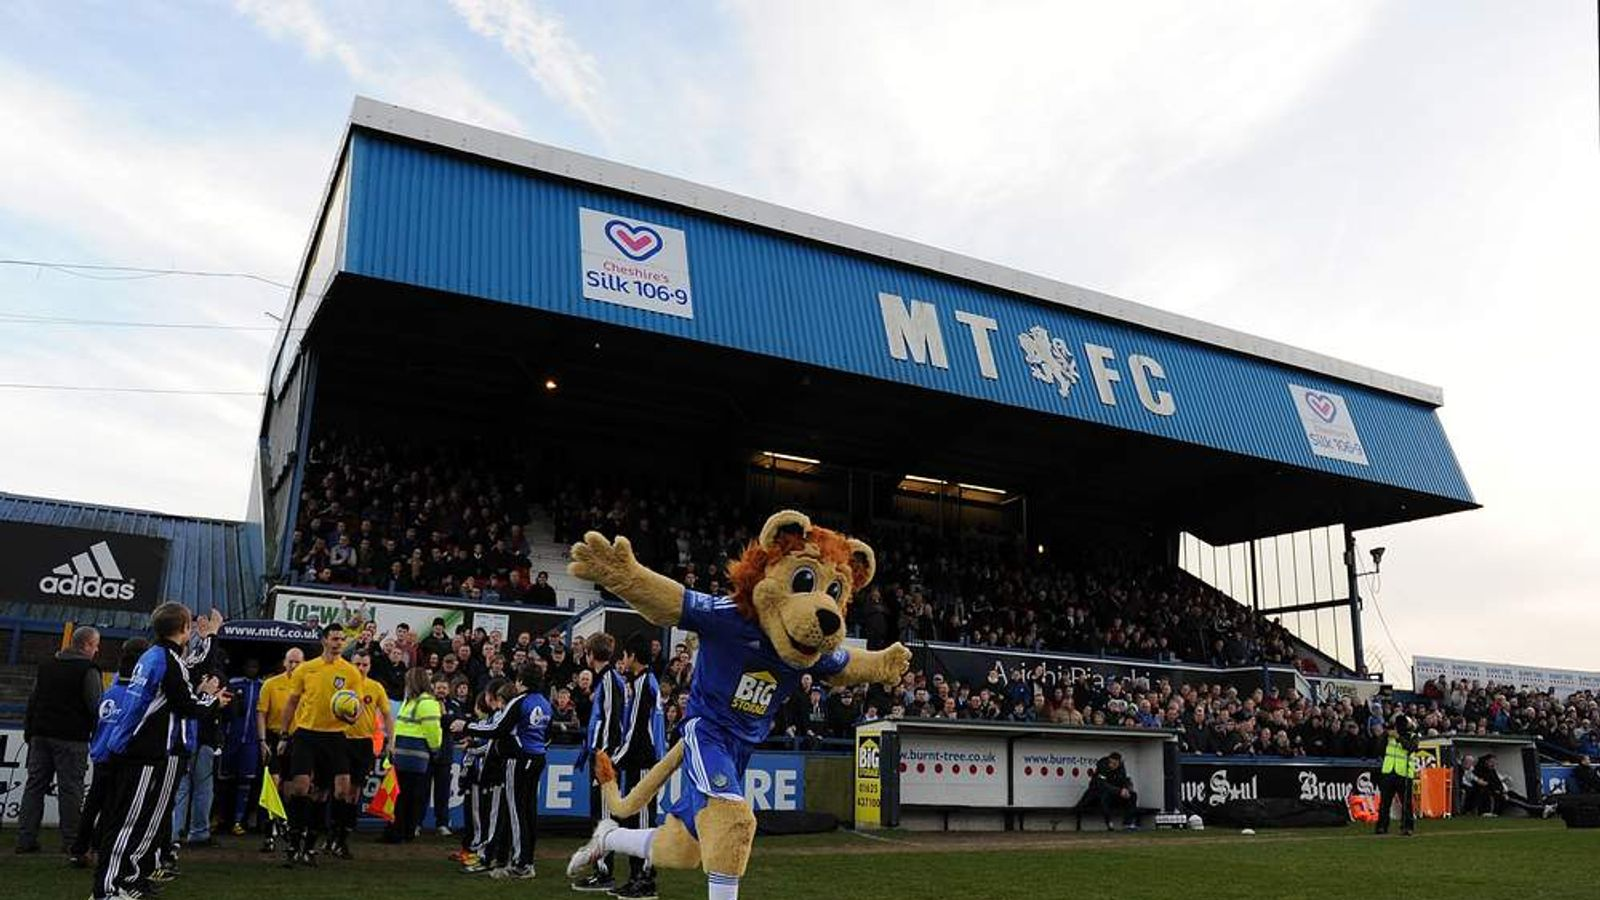 Macclesfield Town v Cardiff City - FA Cup Third Round